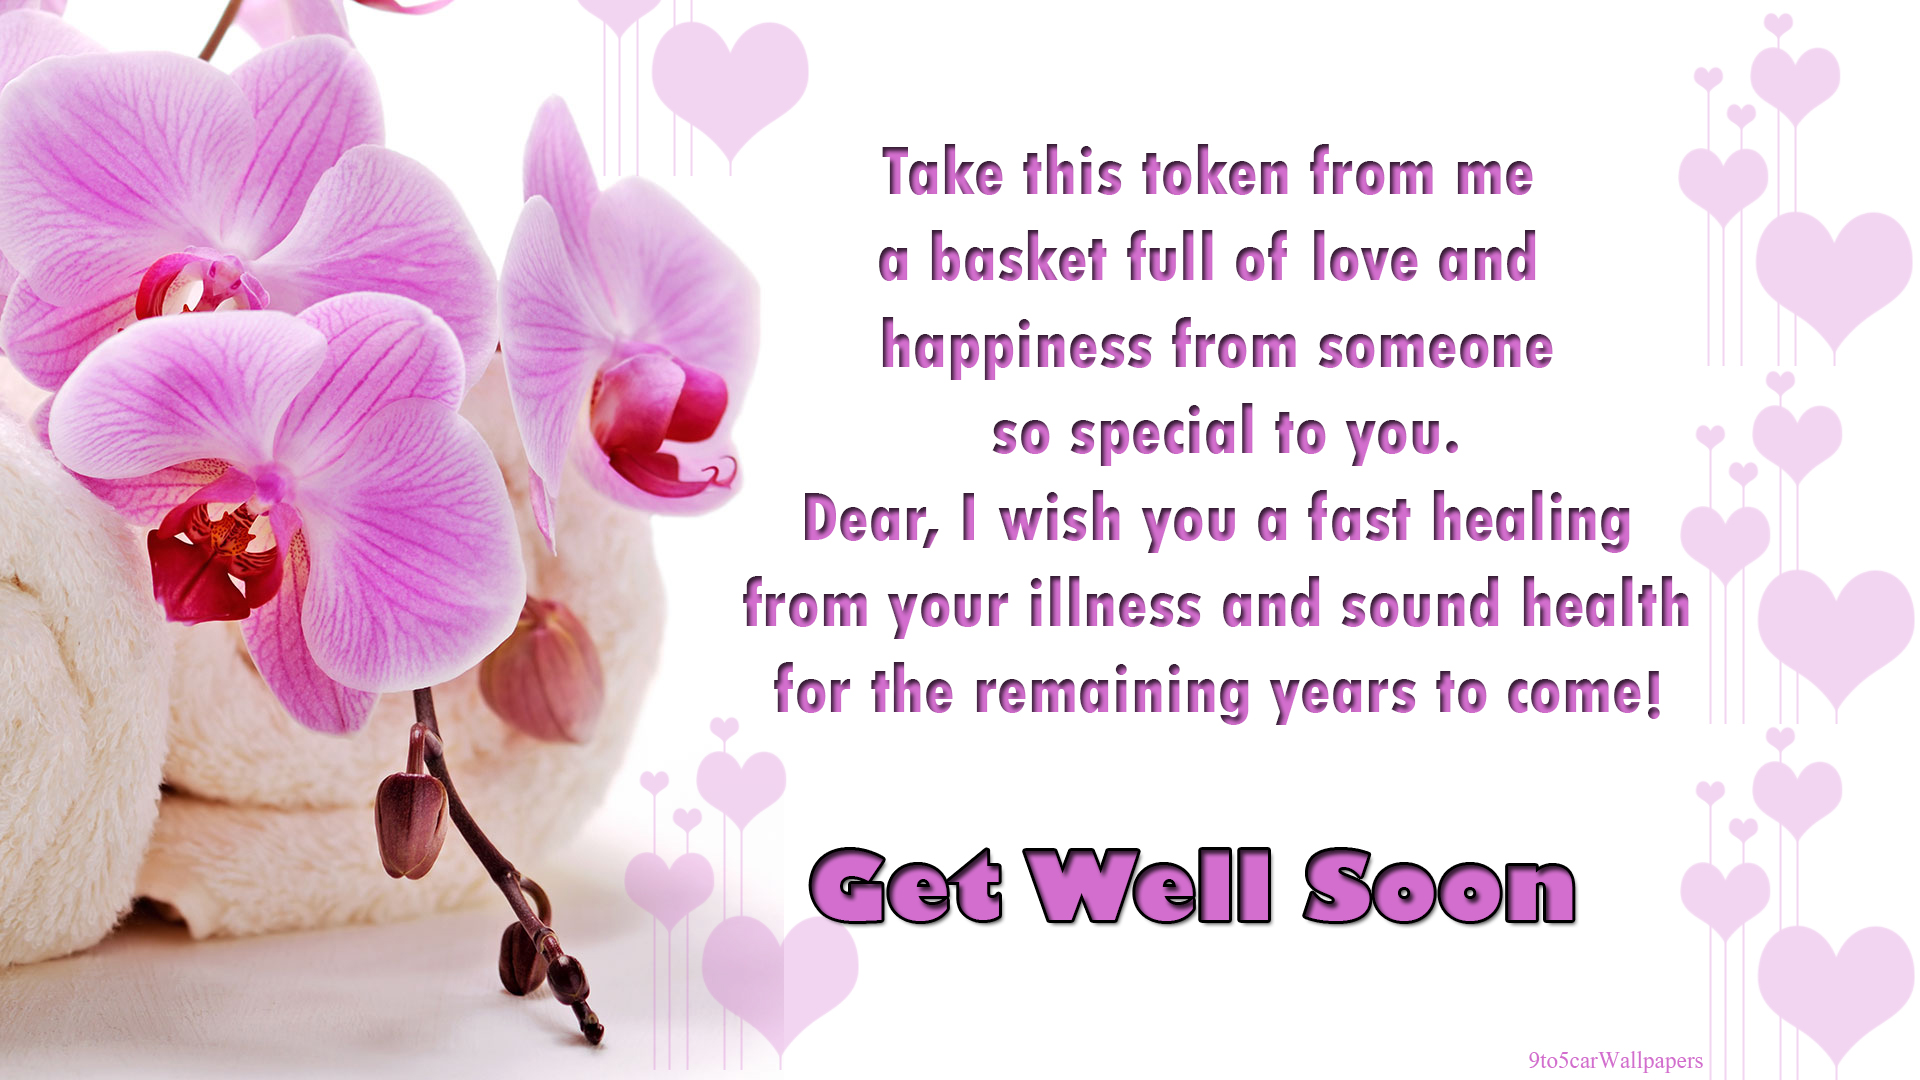 get-well-soon-images-cards-wallpapers